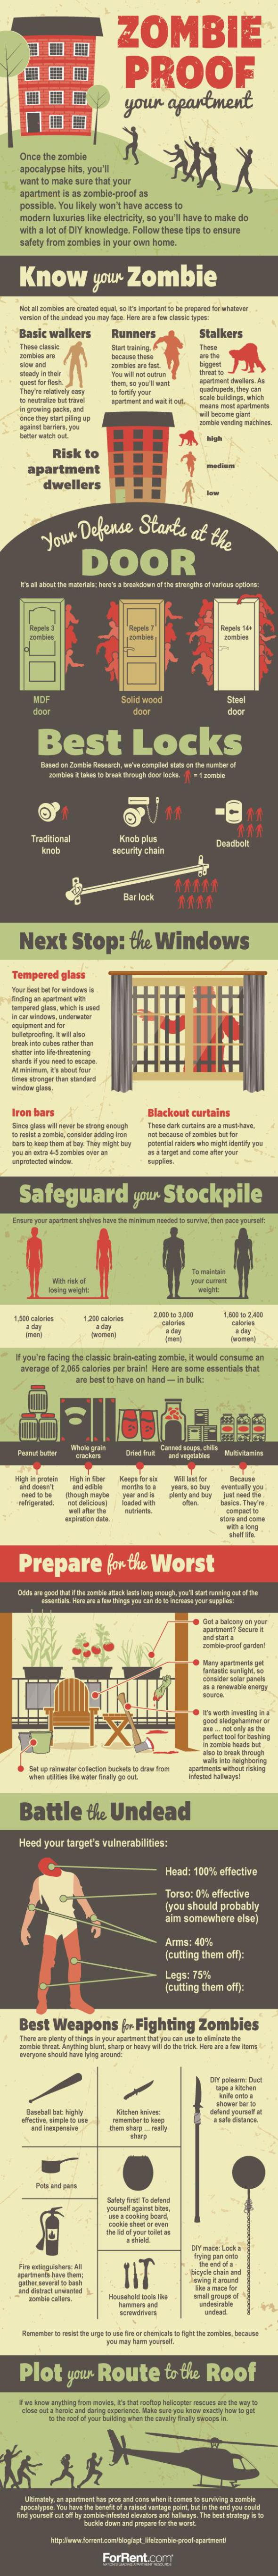 zombie-proof-your-apt-infographic